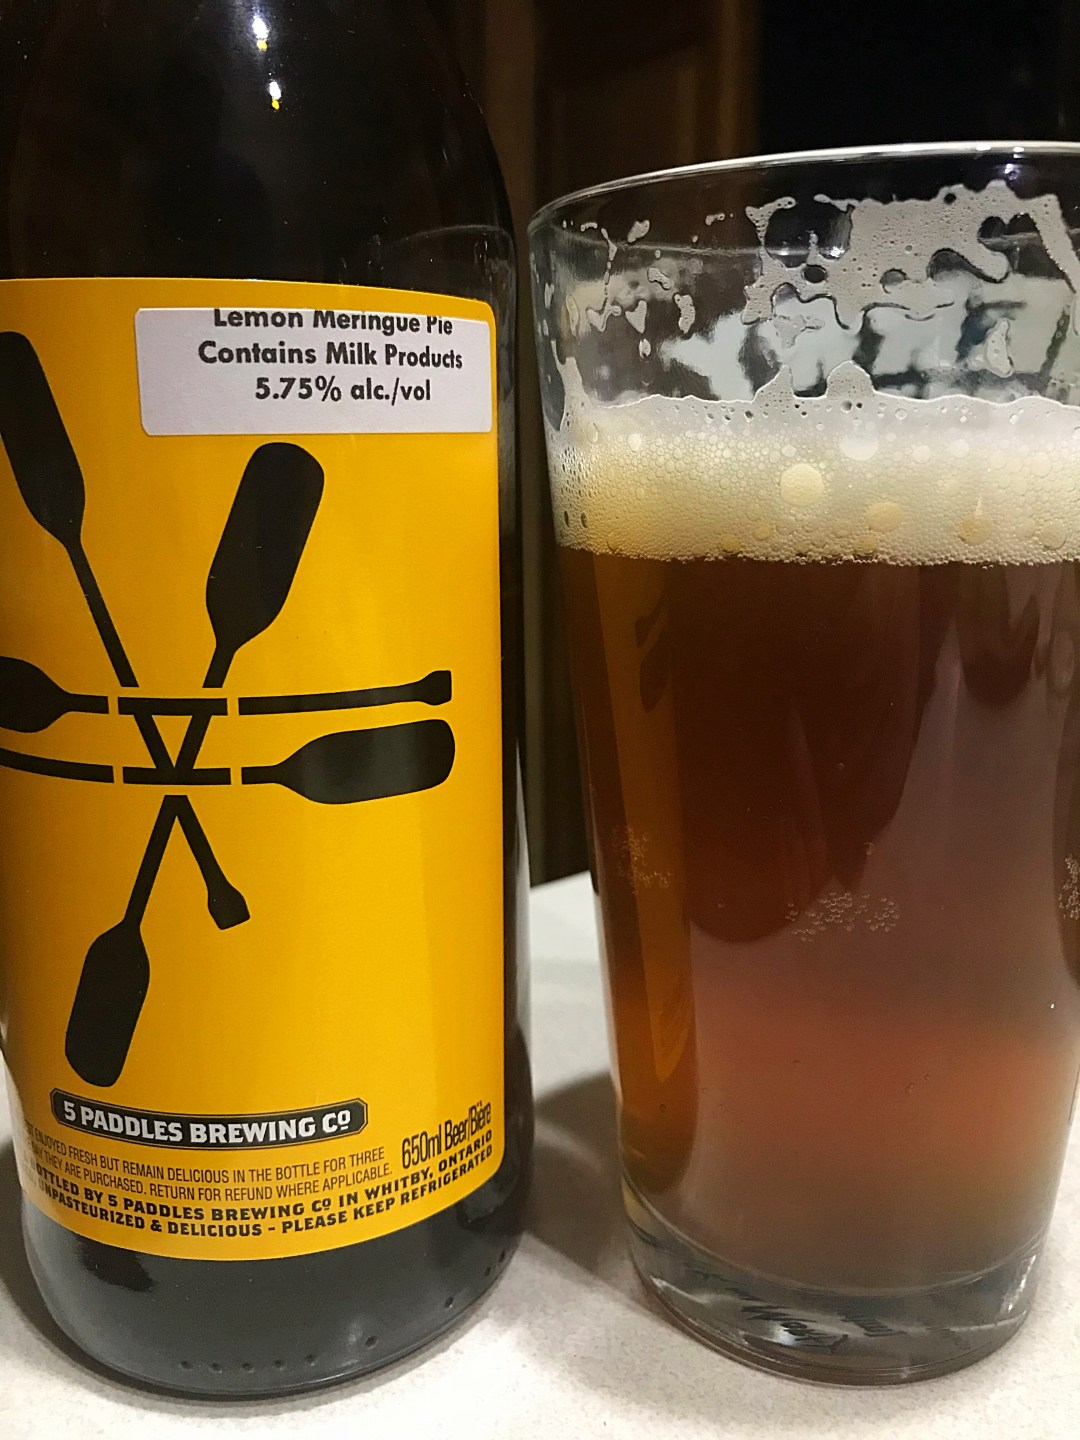 This Lemon Meringue Pie sour ale from 5 Paddles Brewing Co would be an excellent introduction to Craft Beer for those who are generally adverse to beer.